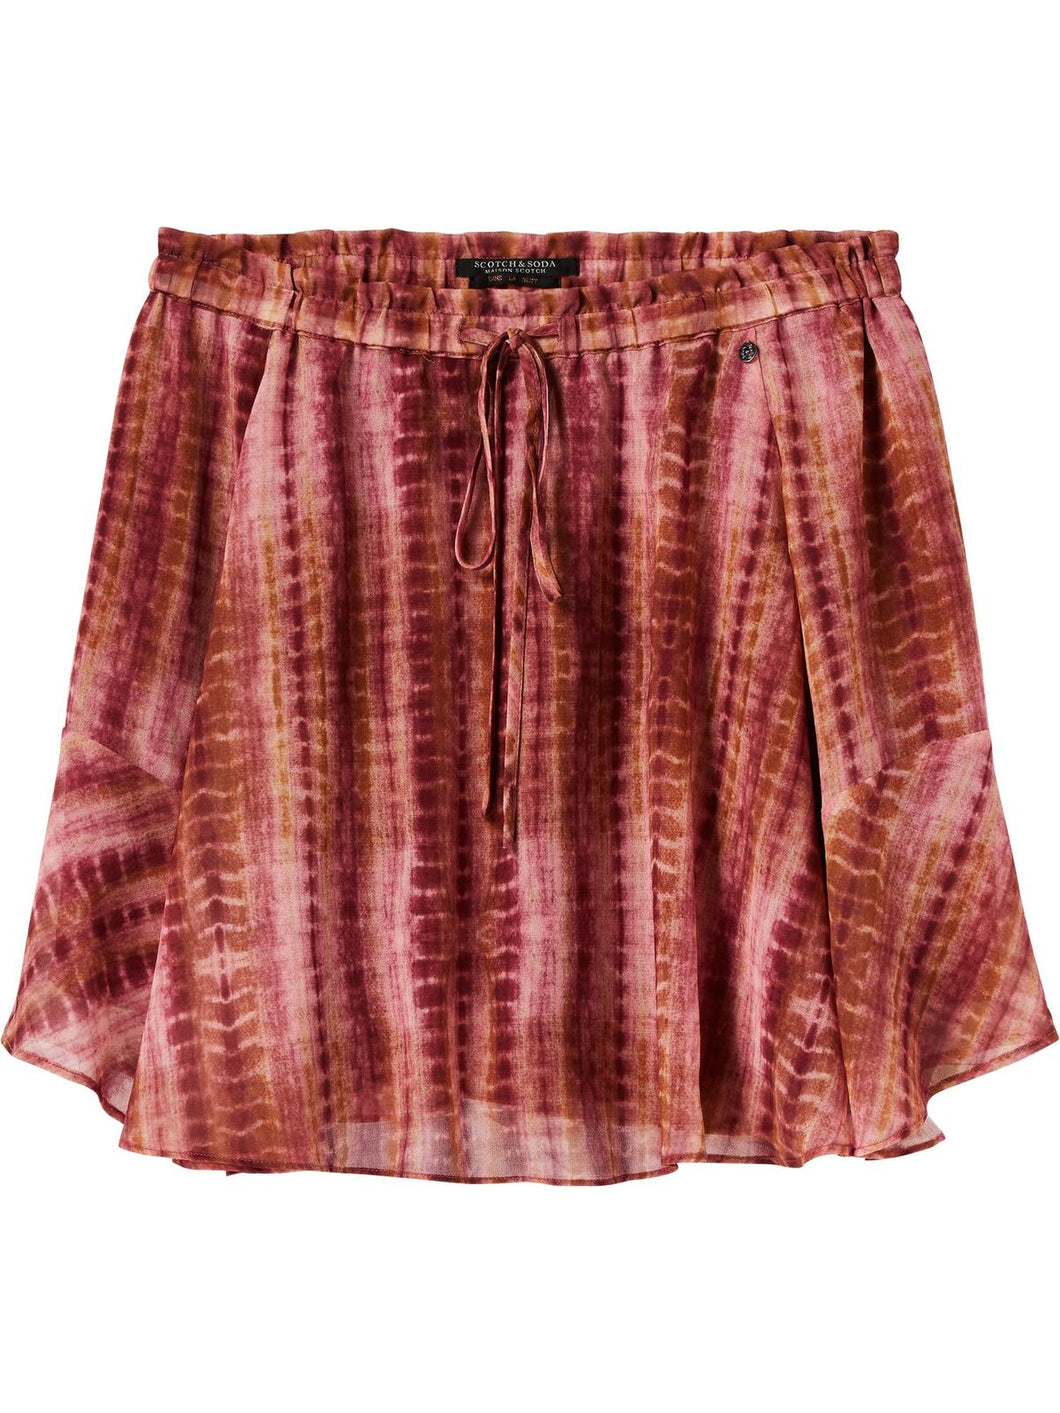 Scotch & Soda Maison Scotch, Short drapey printed skirt- Combo C